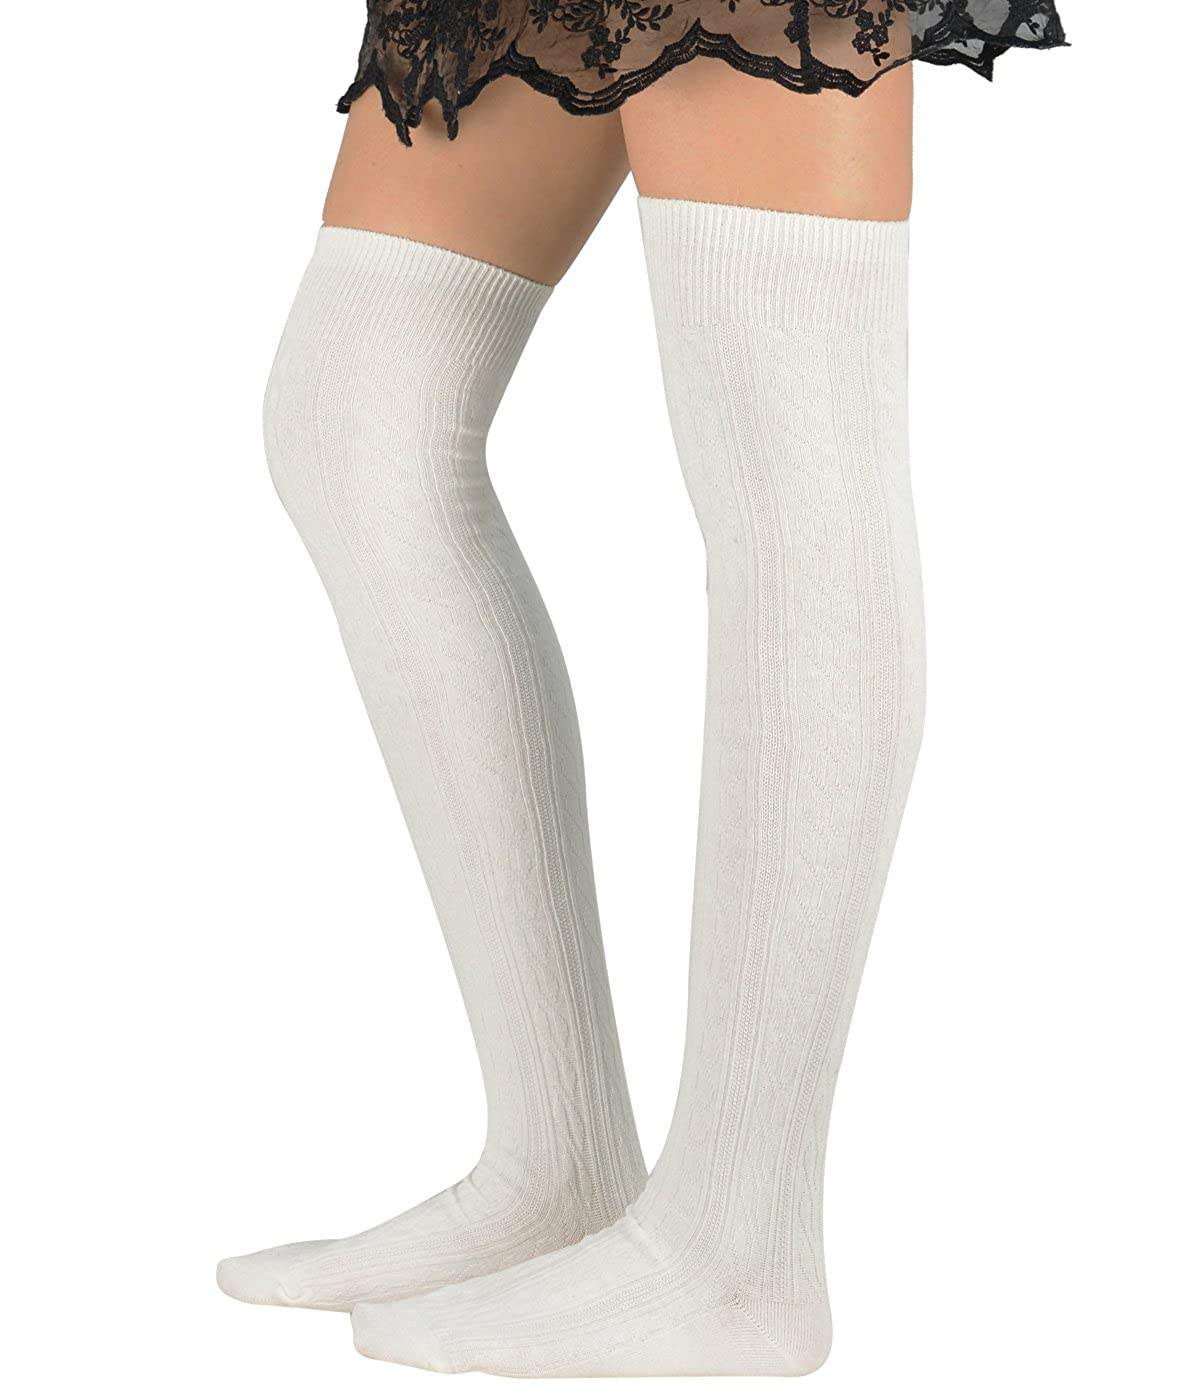 6128be369 Top 10 wholesale Mini Leg Warmers - Chinabrands.com